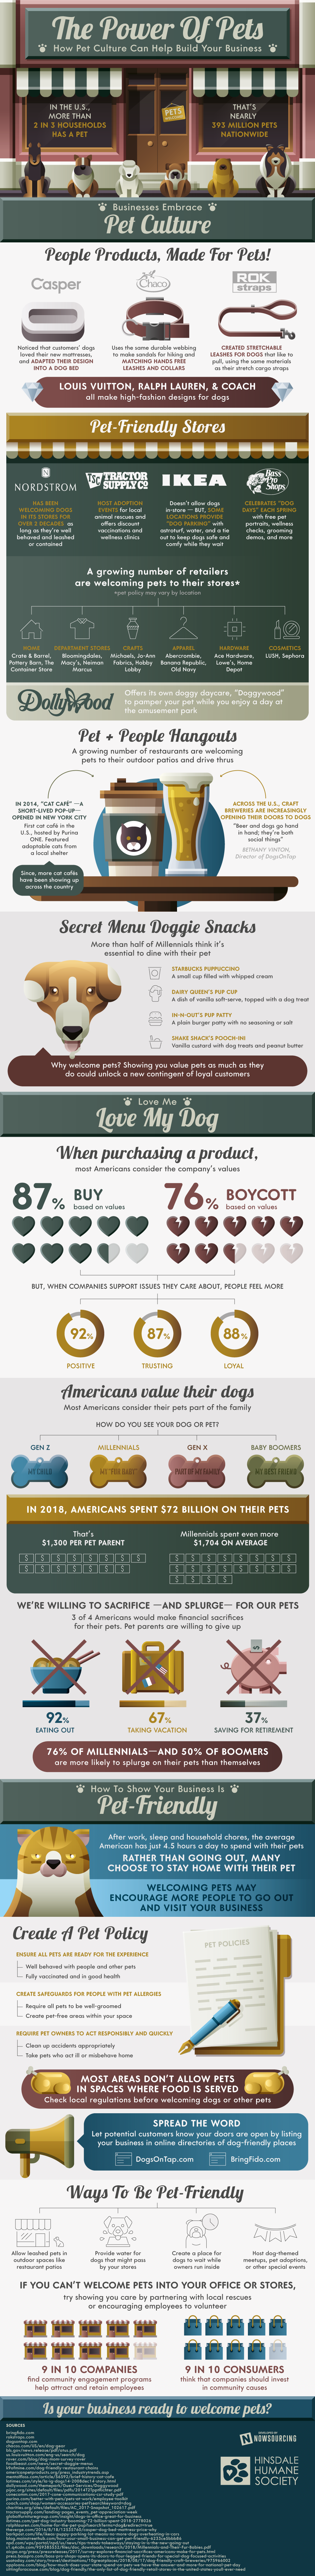 How Pet-Friendly Marketing Policies are Drawing in More Consumers - Infographic